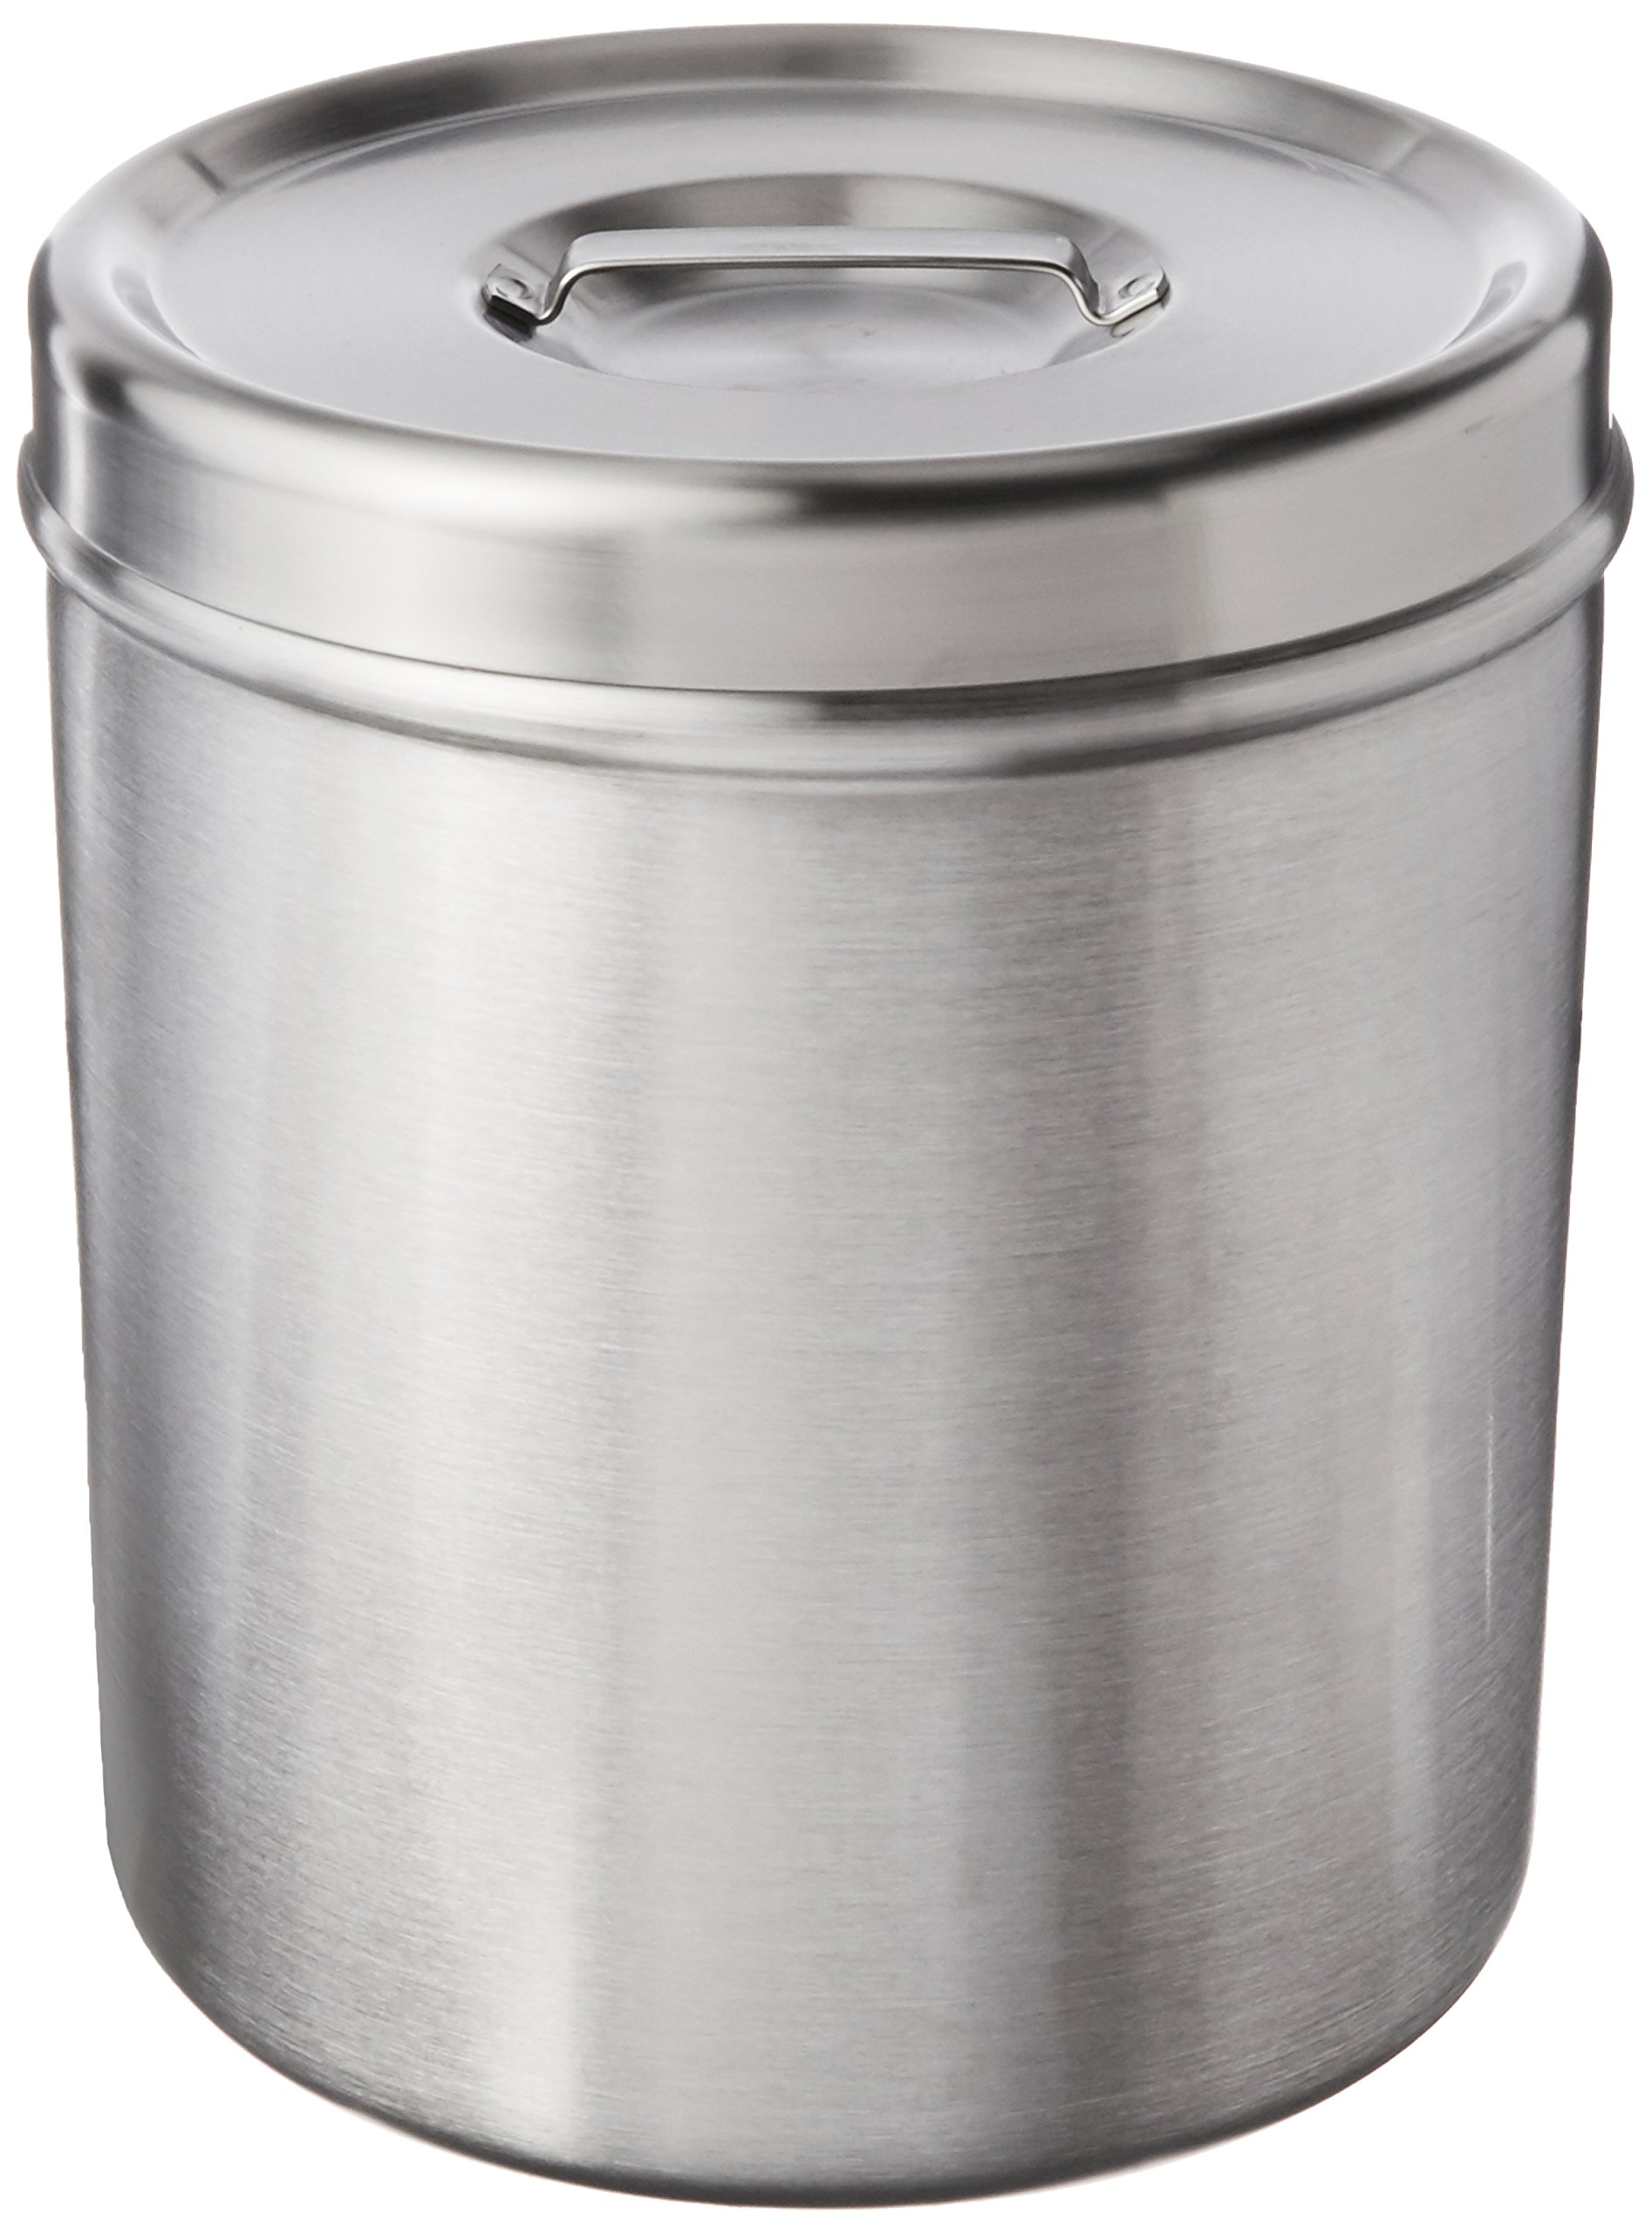 Polar Ware 3J Stainless Steel Dressing Jar with Slip-Over Cover, 1-7/8 qt. Capacity (Case of 12)